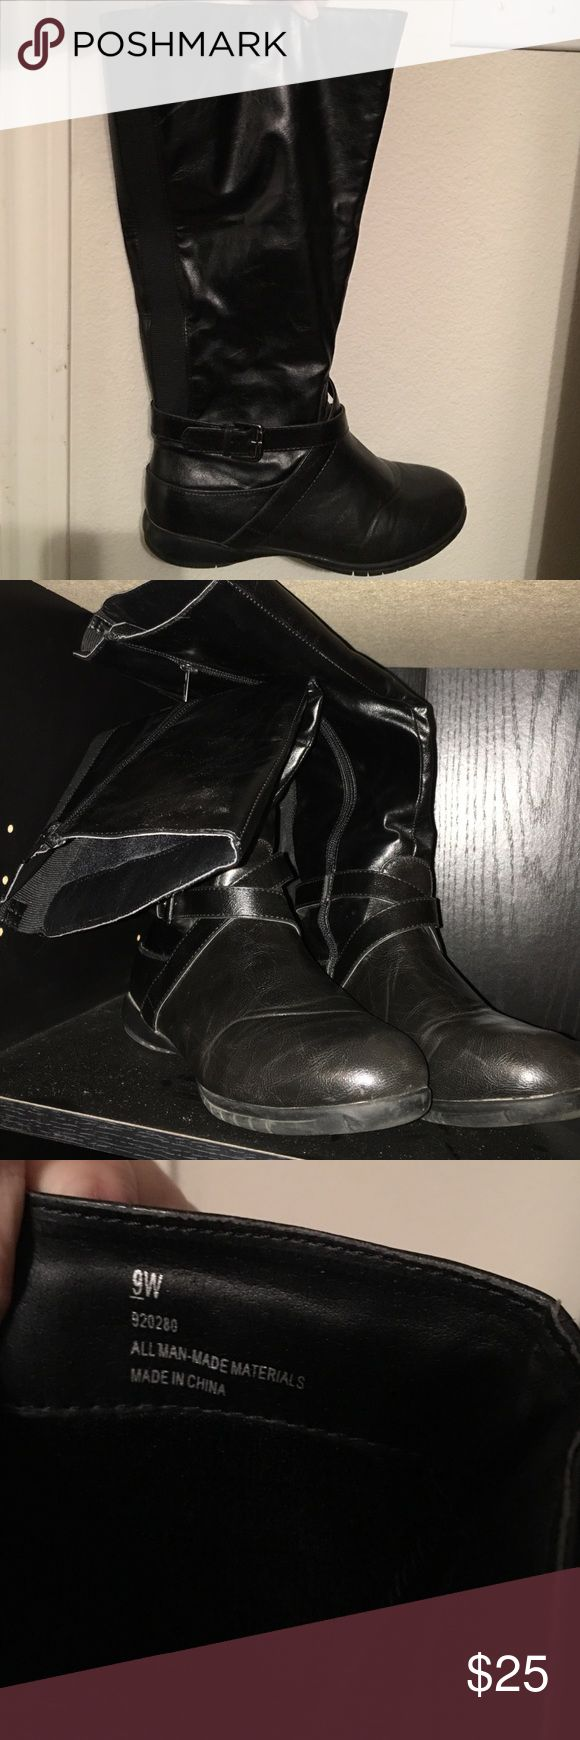 Knee high Lane Bryant boots Black knee high wide boots Lane Bryant Shoes Winter & Rain Boots